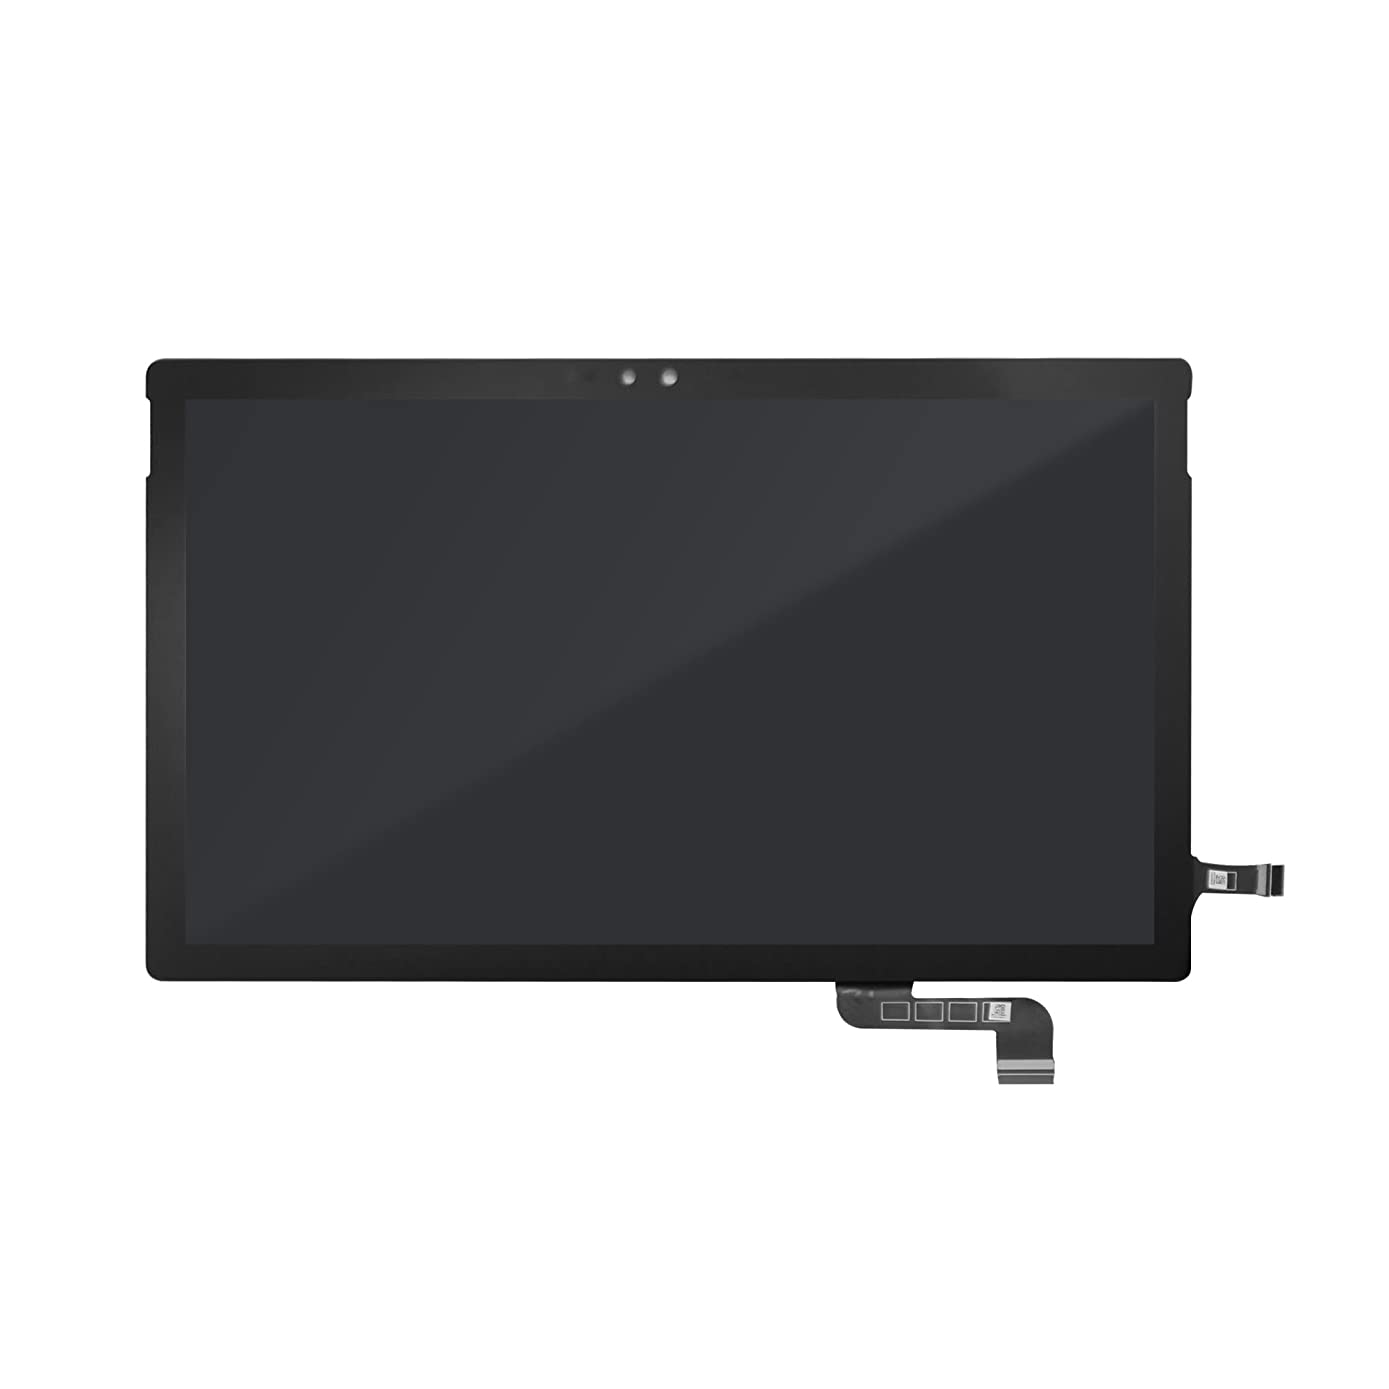 LCDOLED Compatible 13.5 inch 3000x2000 IPS VVX14P048M00 LED LCD Display Touch Screen Digitizer Assembly Replacement for Microsoft Surface Book 1 1703 1704 1705 (with Adhesive)